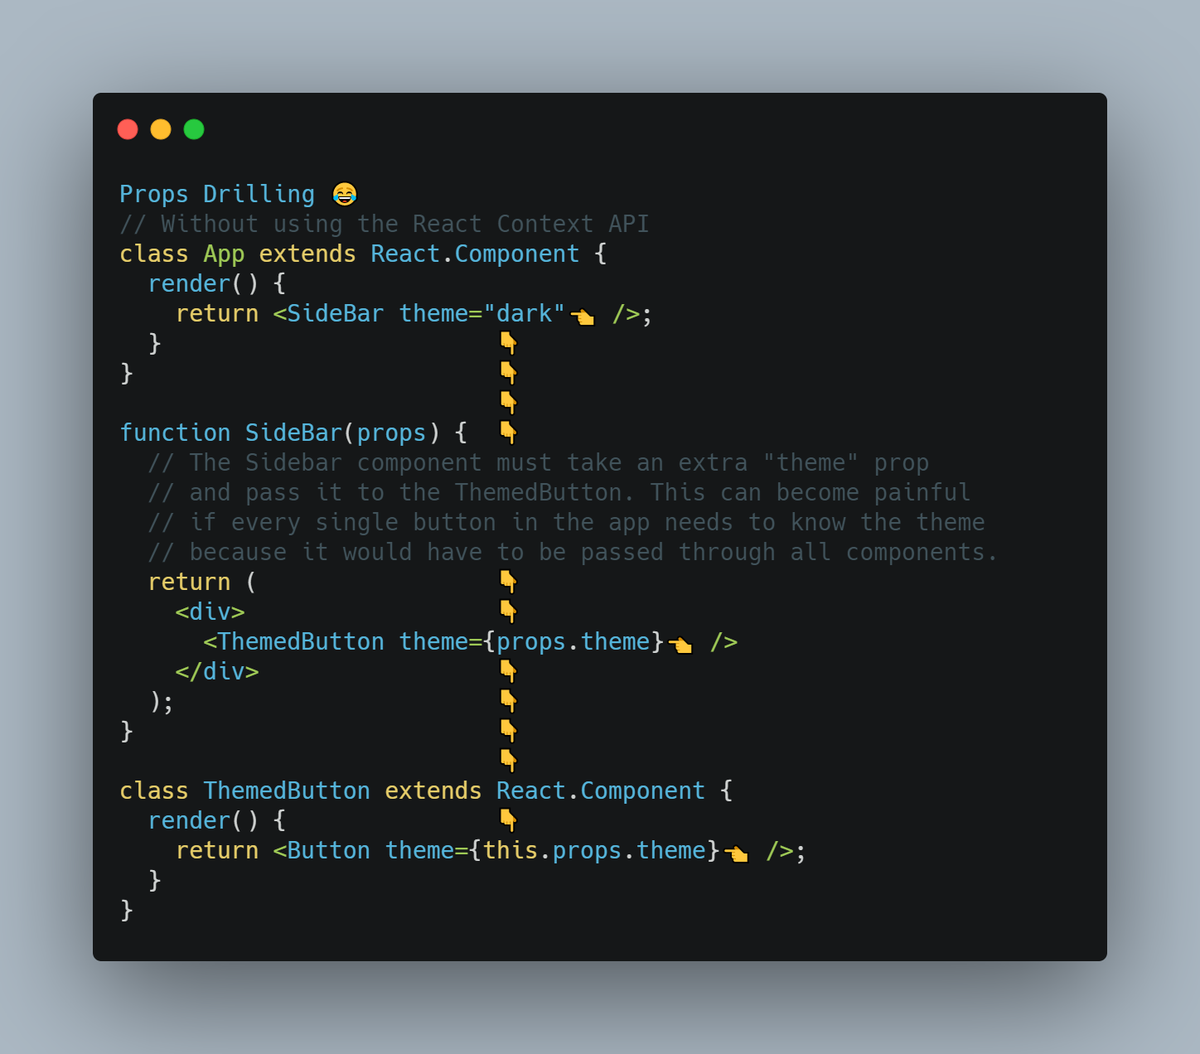 React Context API in   picture     #100DaysOfCode pic.twitter.com/RXMBKSulVB